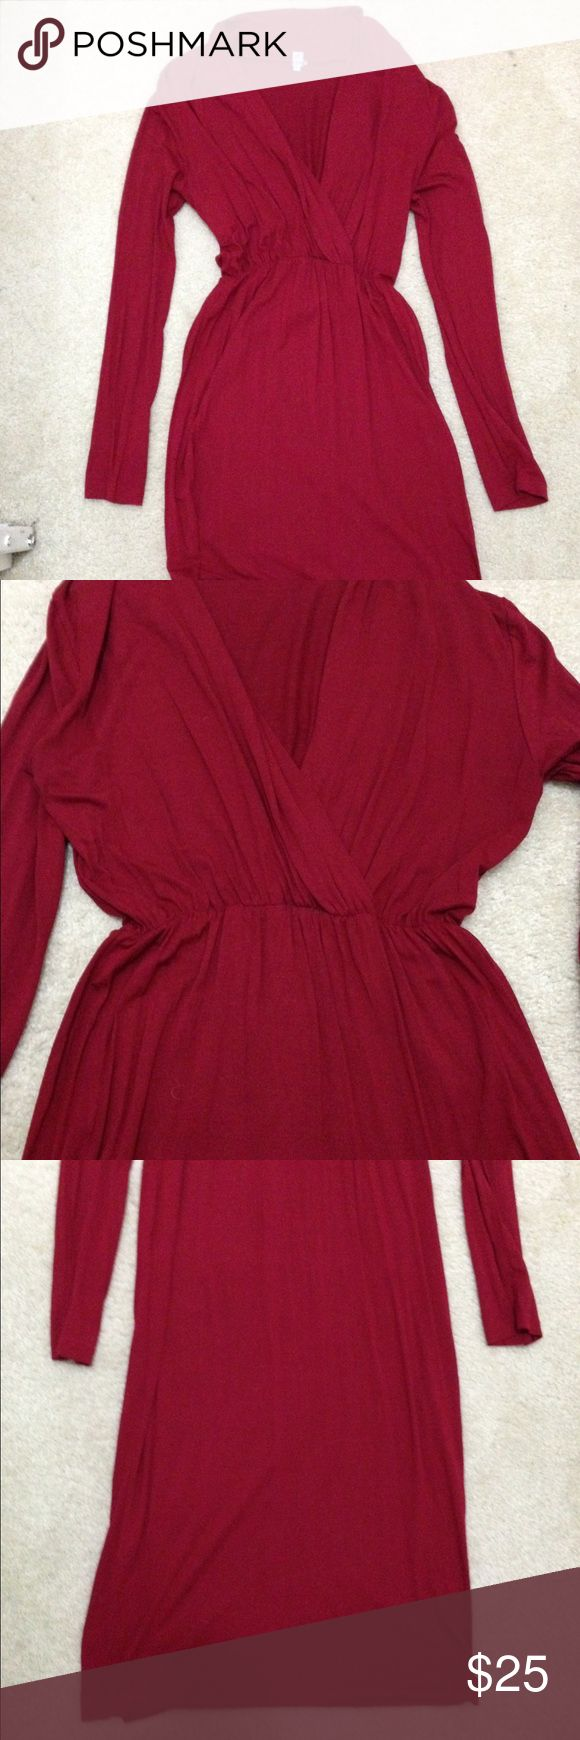 Midi wrap dress cotton oxblood New without tags. Very nice fit and color. I'm selling simply because I have too many dresses. Fits S-M. Dresses Midi